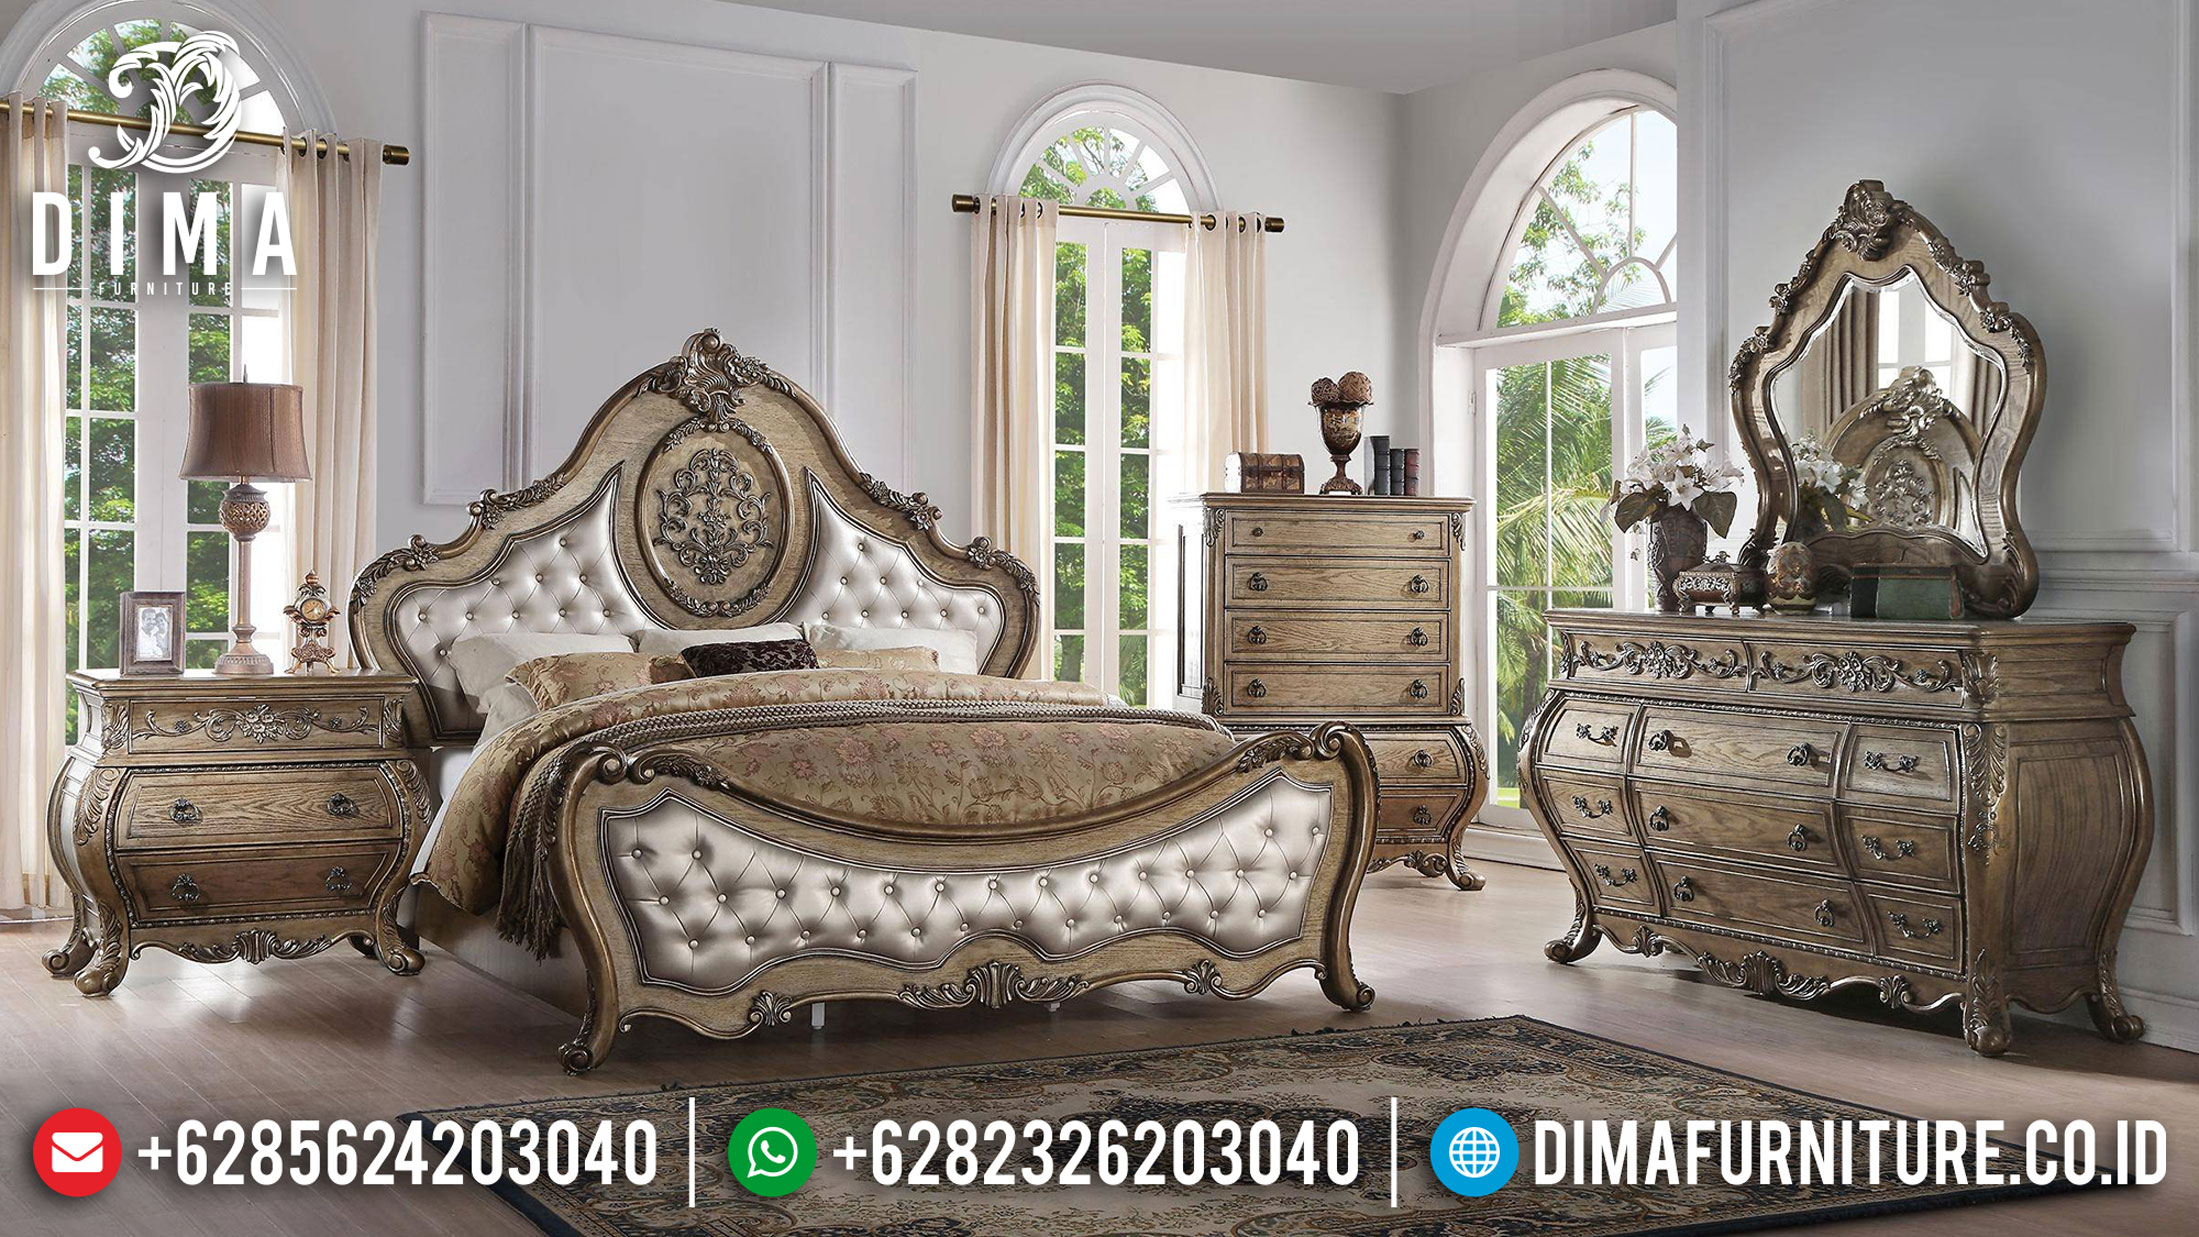 Model Kamar Set Mewah Classic Empire Carving Furniture Jepara Terupdate TTJ-1120